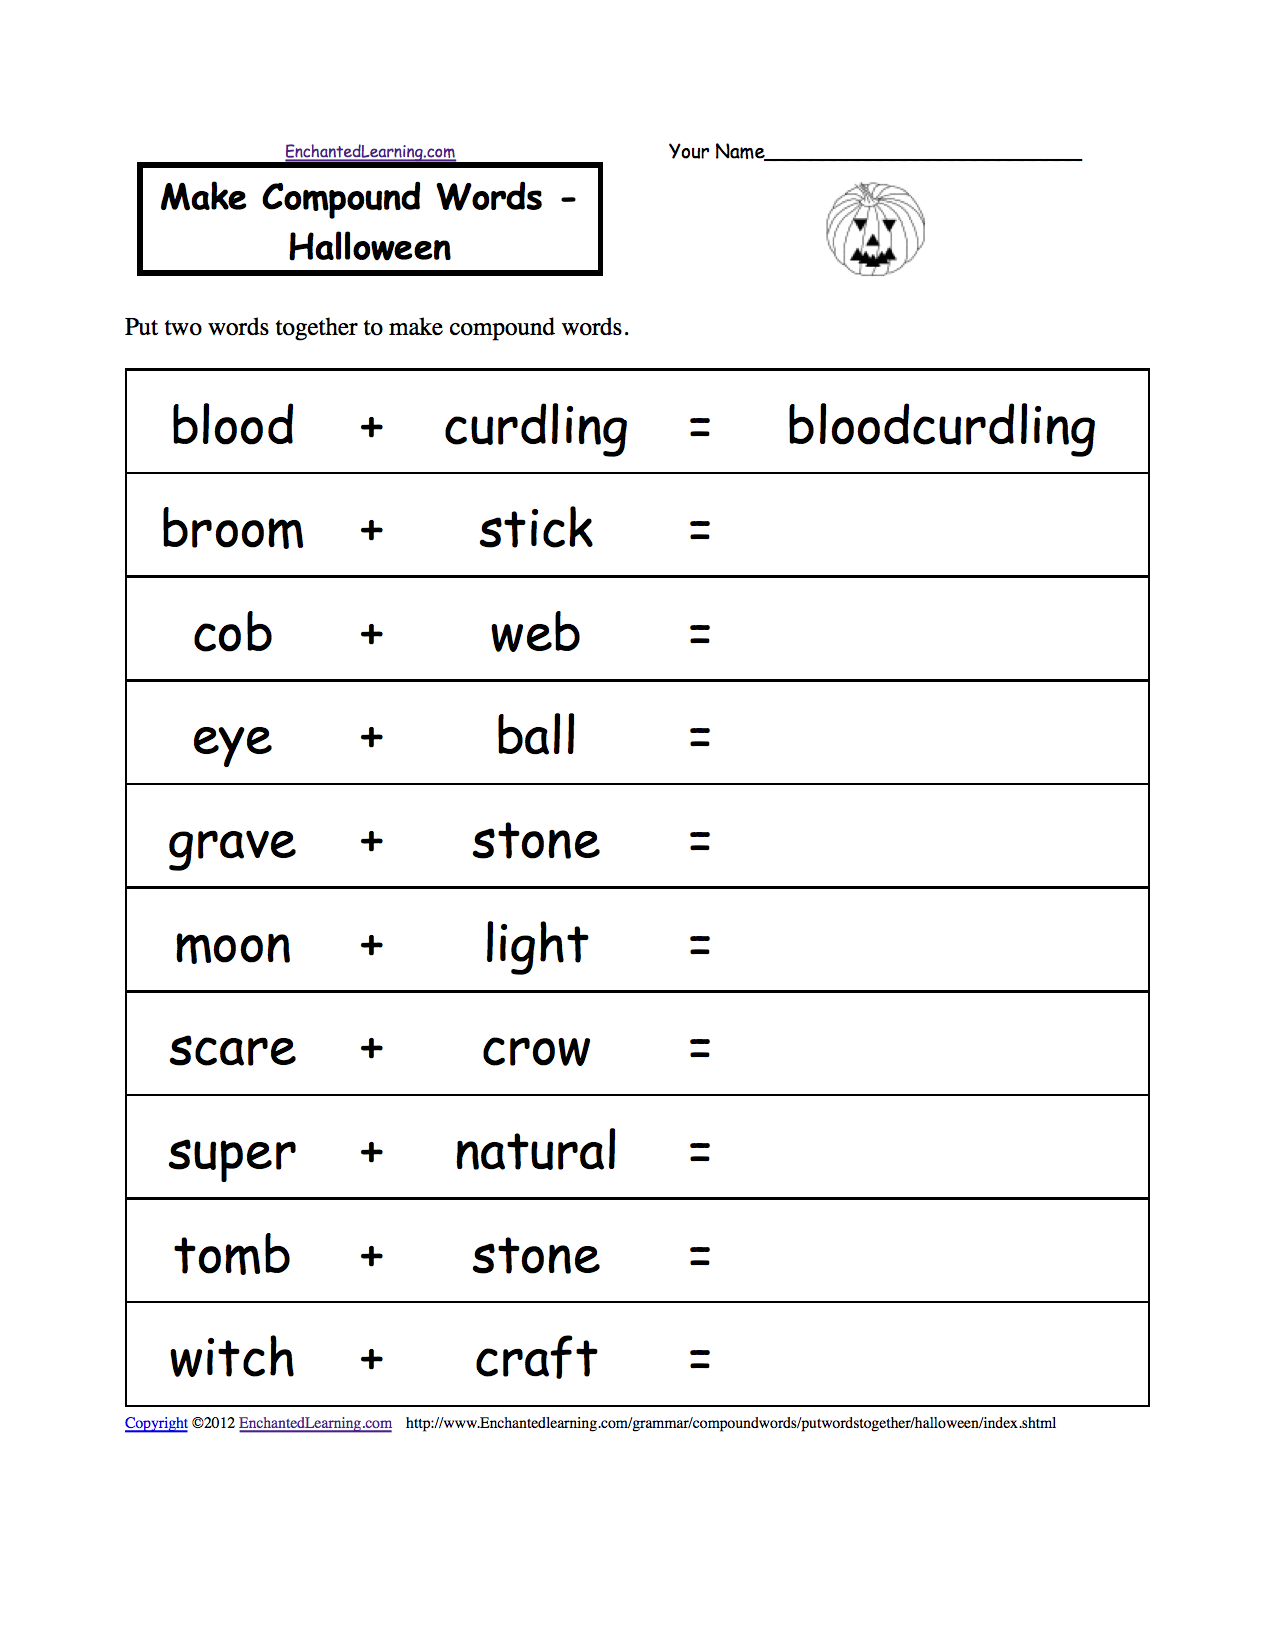 Worksheets Halloween Printable Worksheets halloween activities spelling worksheets enchantedlearning com make compound words printable worksheet